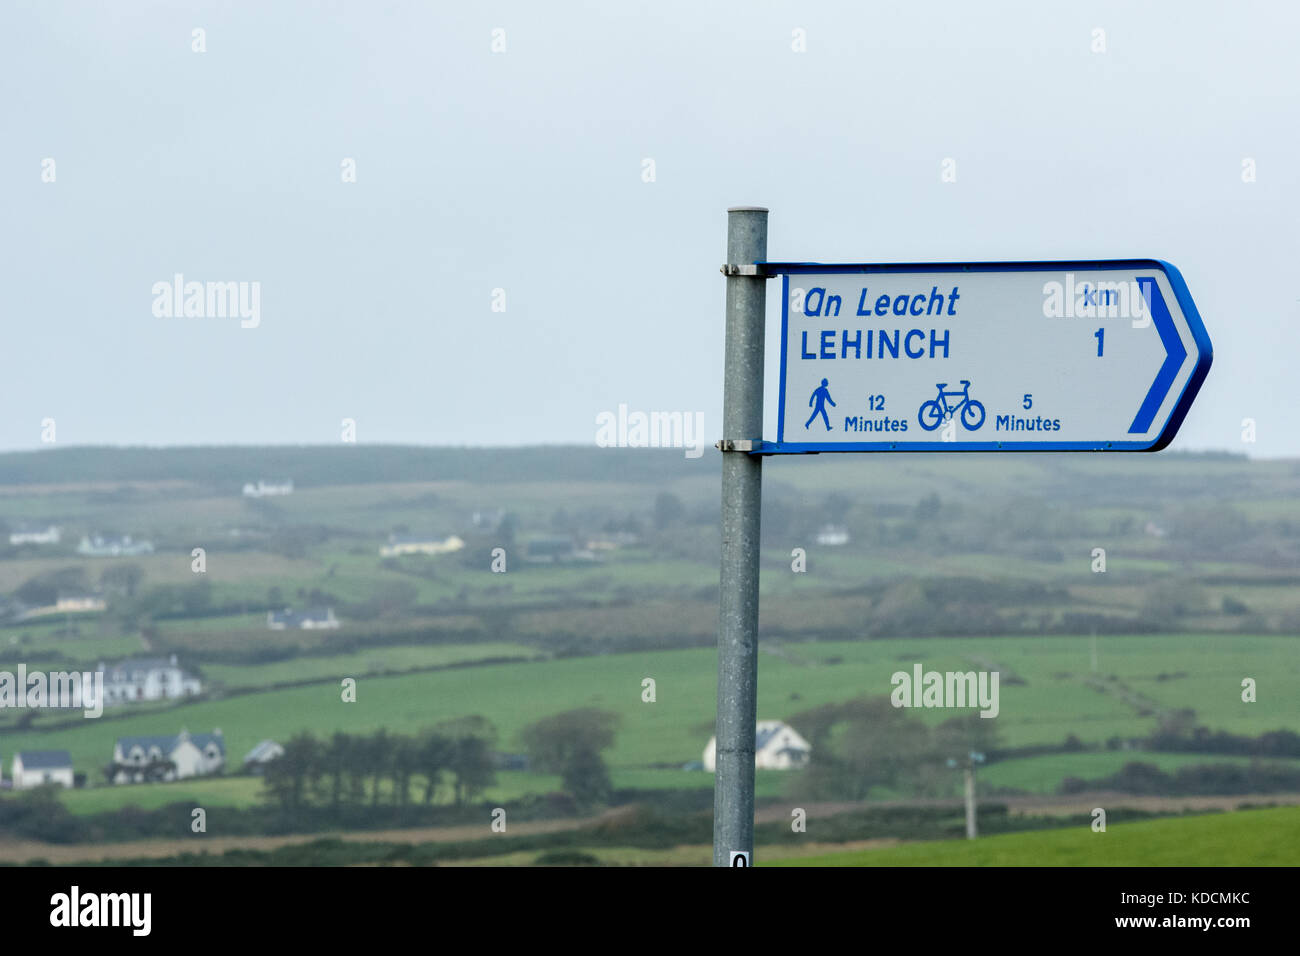 Signpost for walking and cycle ways through the west of Ireland landscape at Lahinch (Lehinch) in County Clare - Stock Image